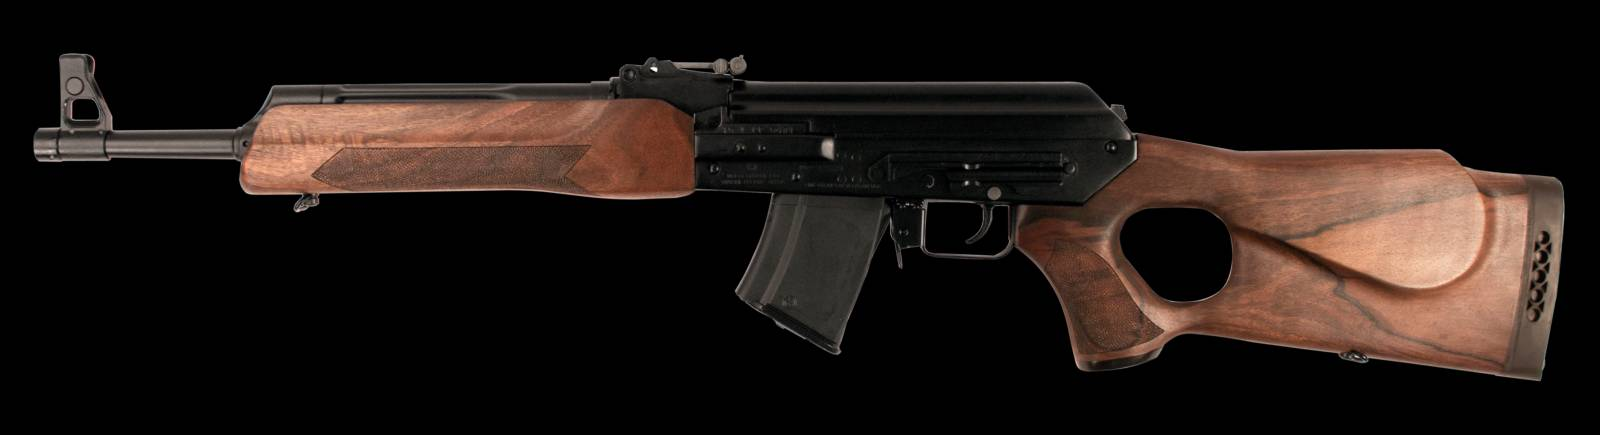 Molot VPR-76239-01 VEPR 7.62x39mm Semi-Automatic 16